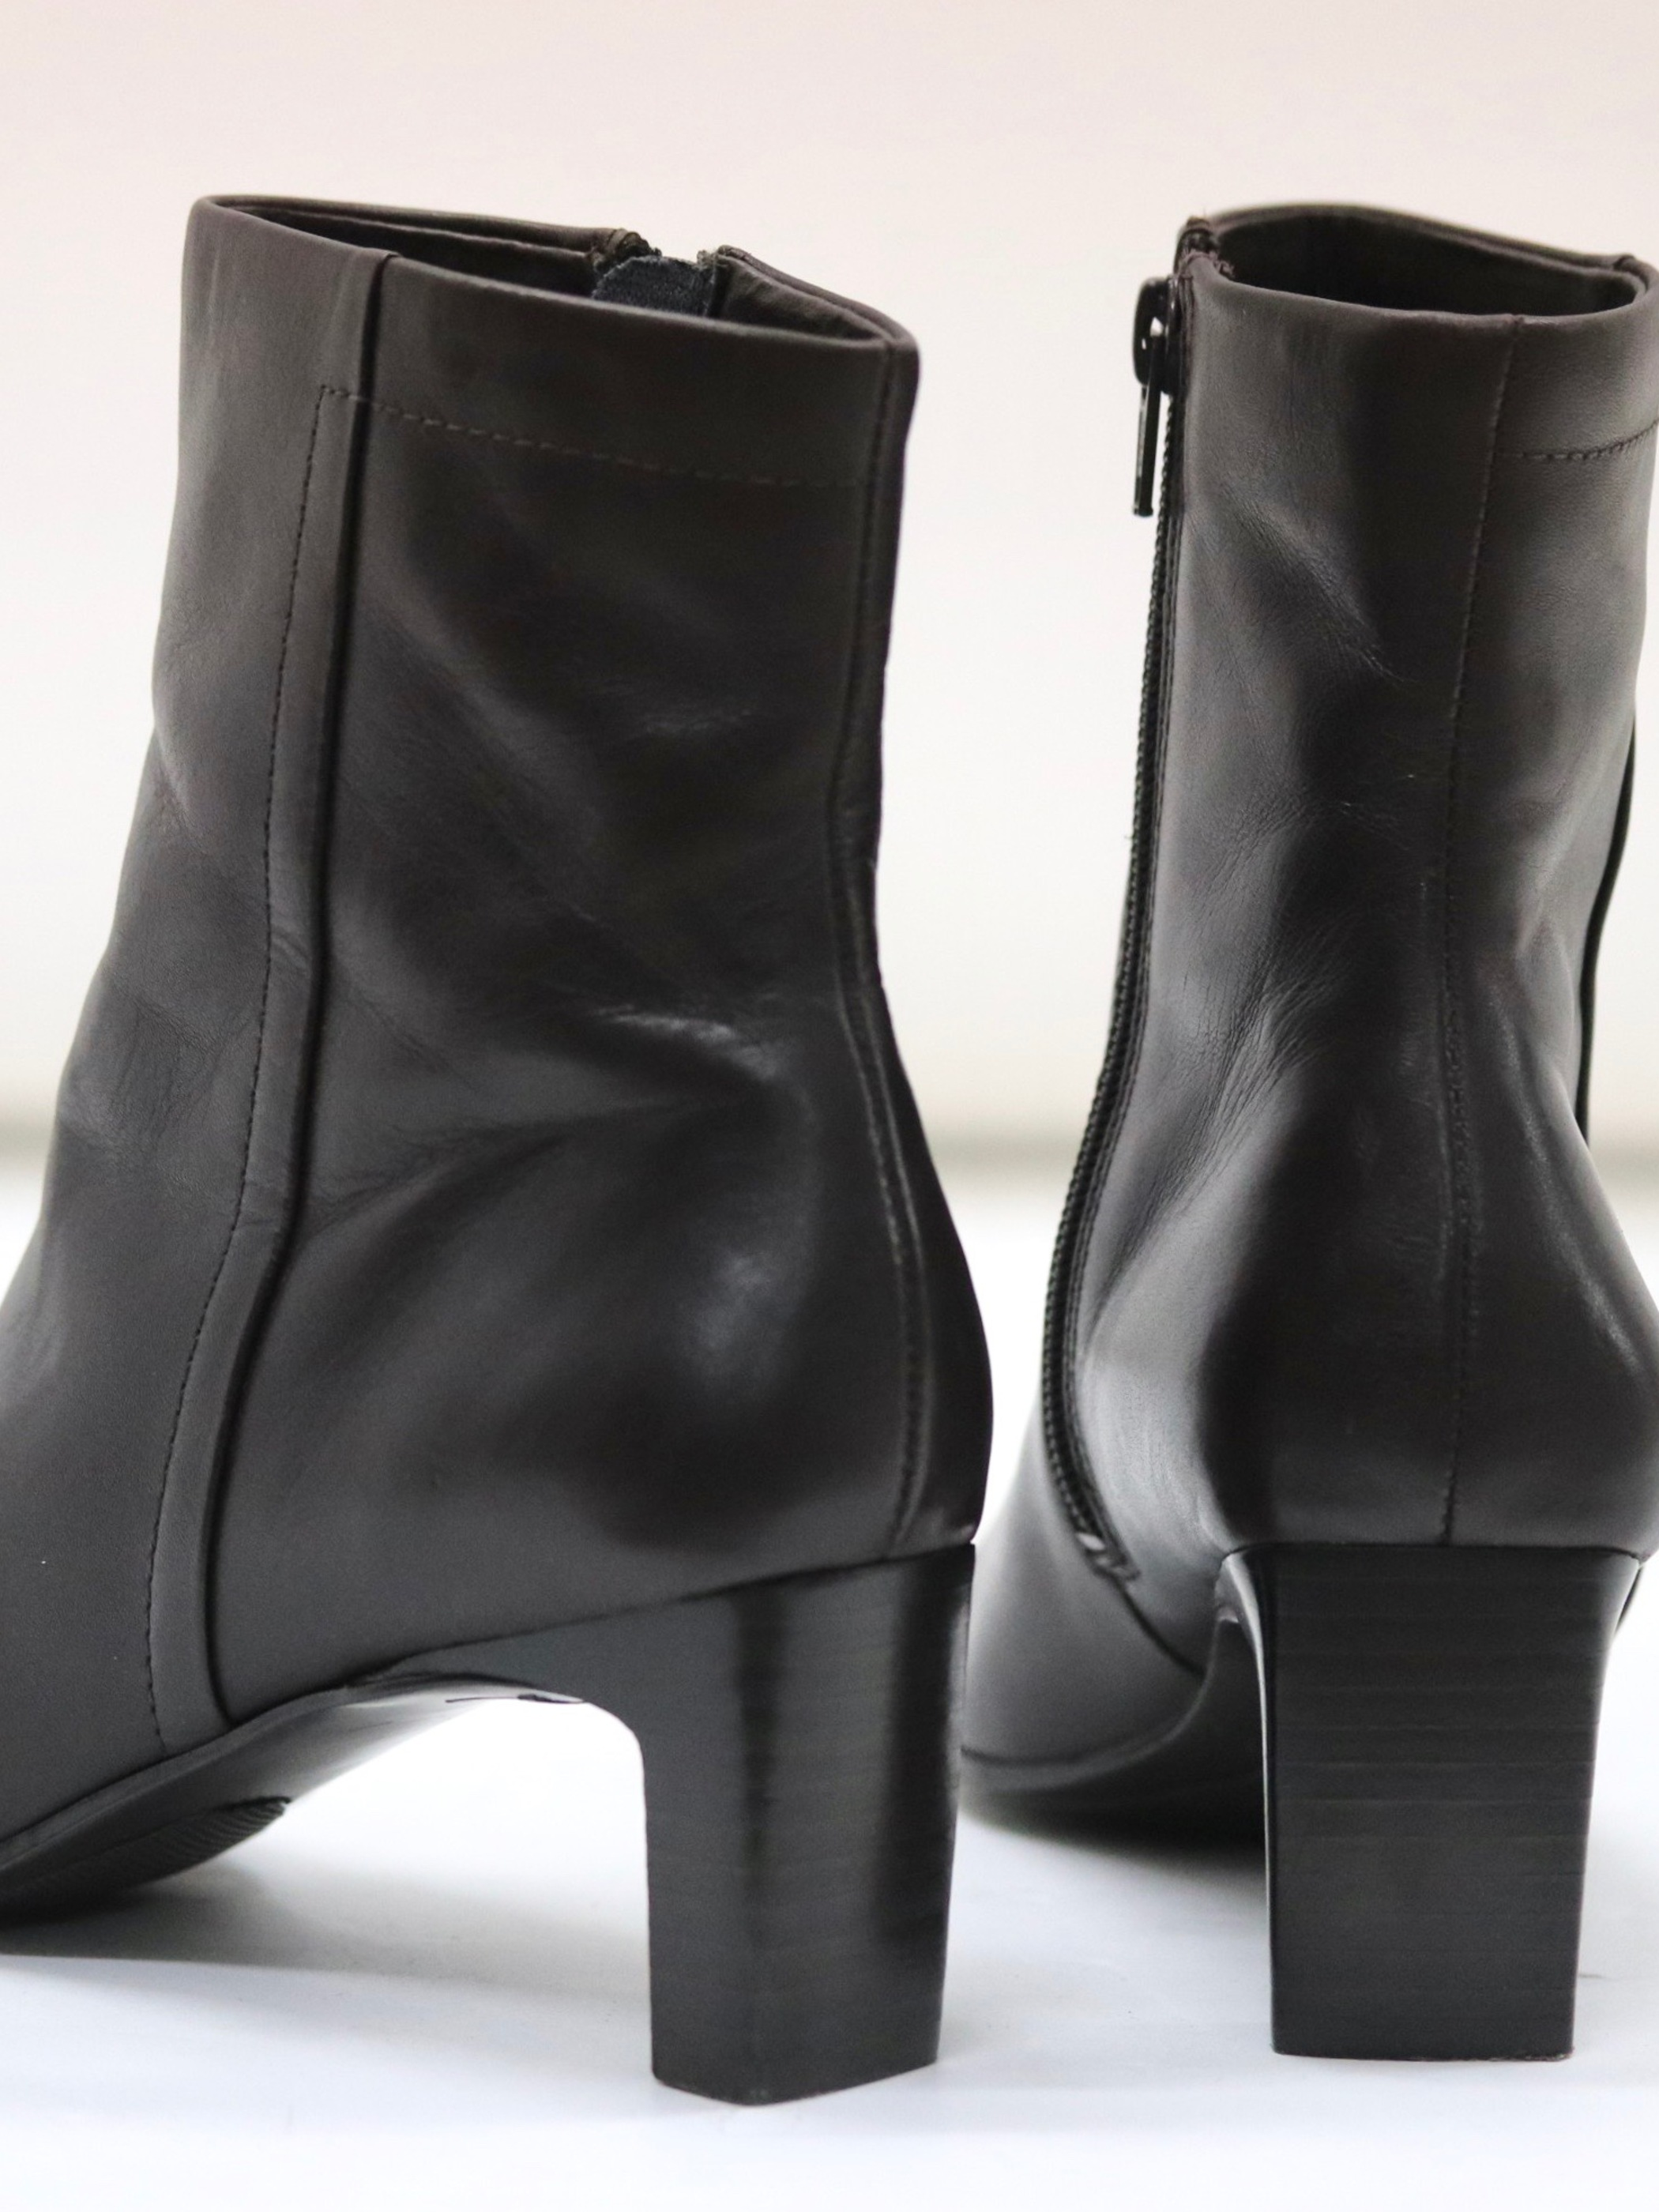 Square toe heel leather boots